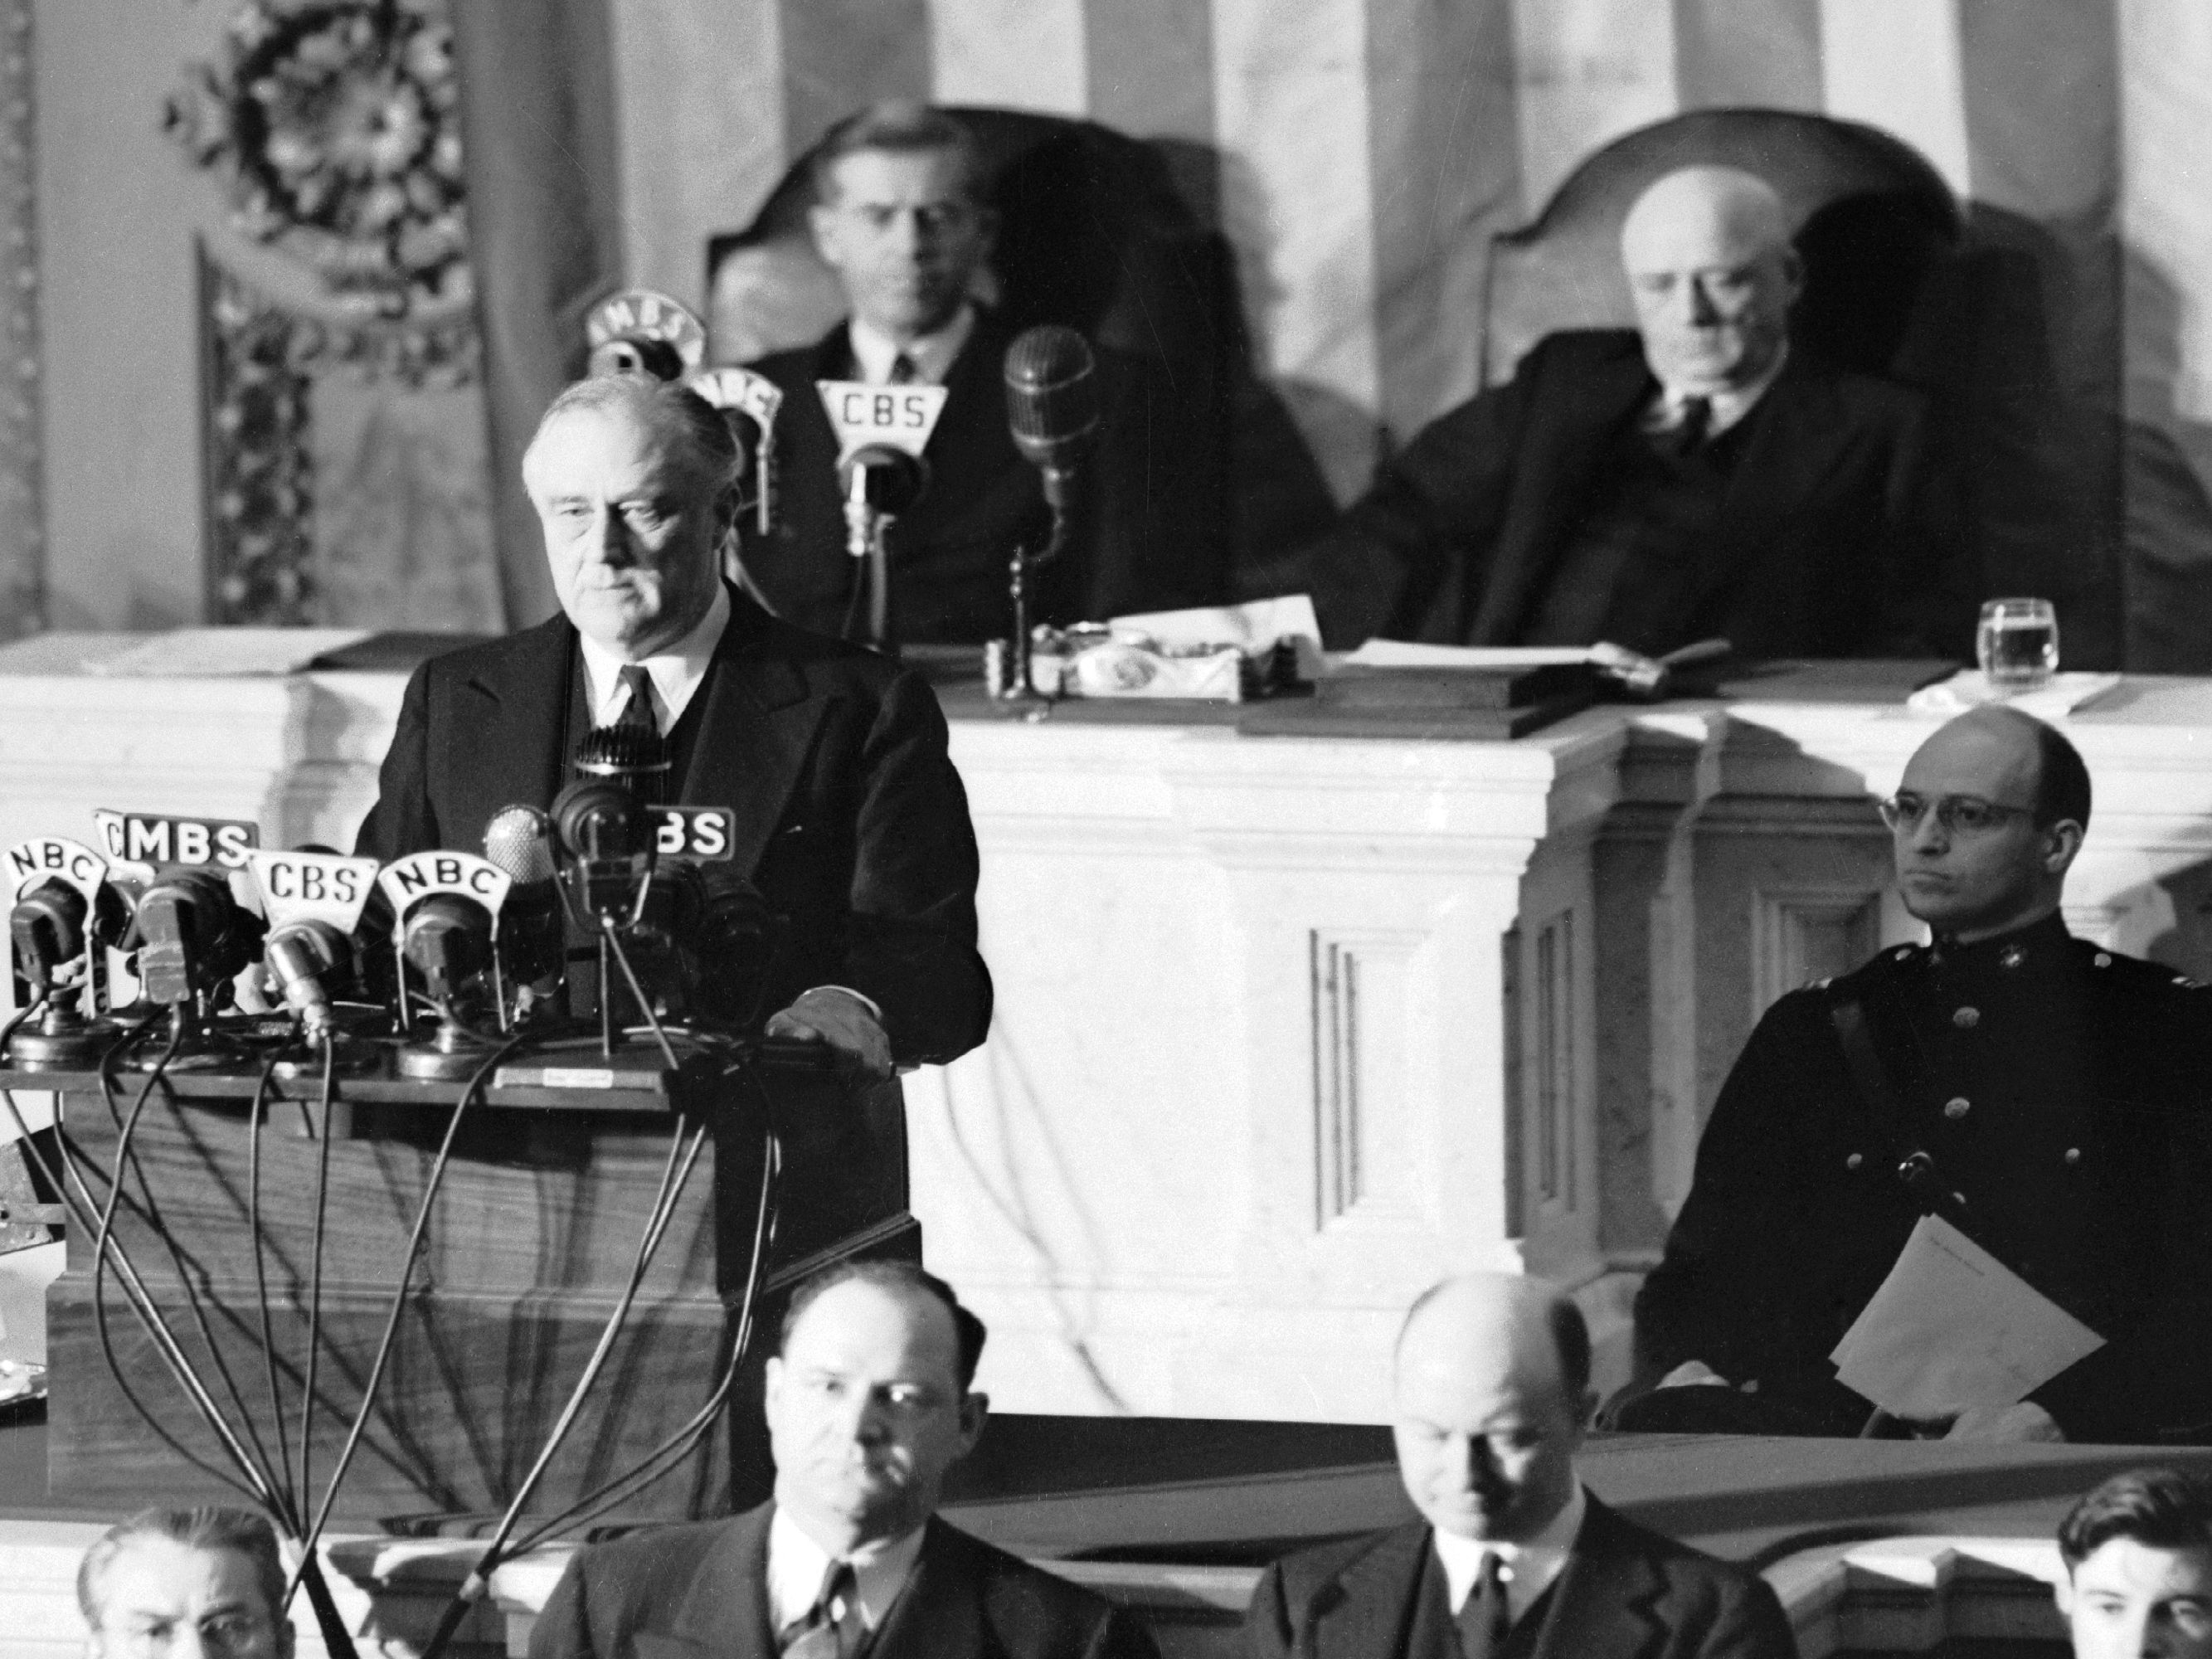 day of infamy speech given by fdr after pearl harbor